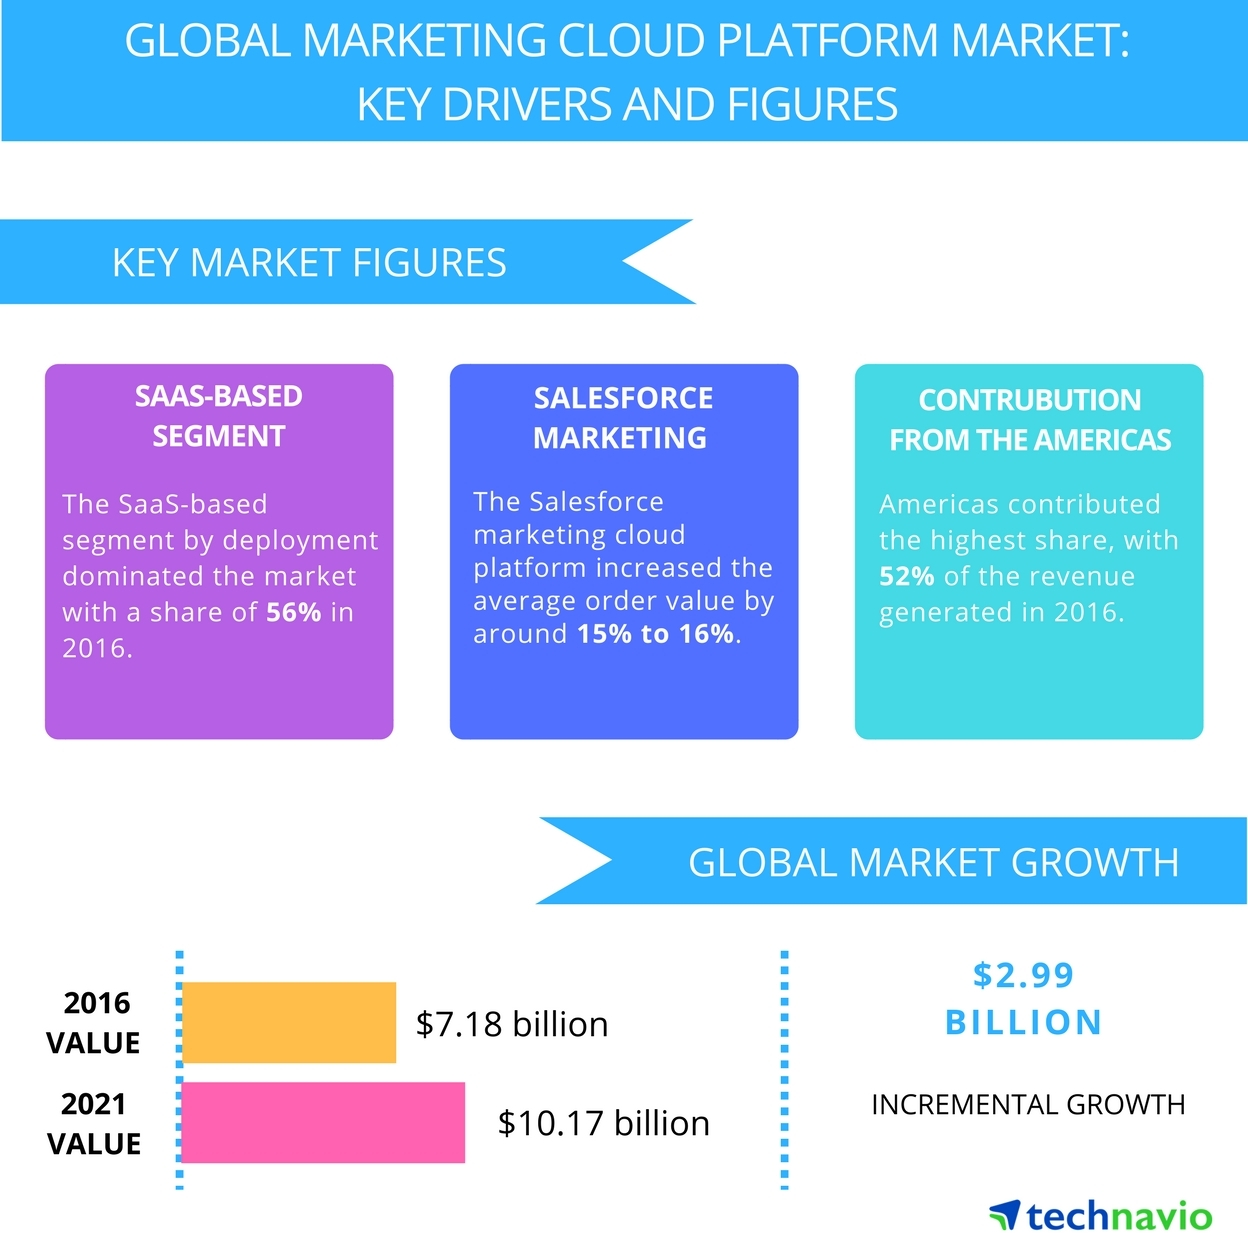 Technavio has published a new report on the global marketing cloud platform market from 2017-2021. (Photo: Business Wire)